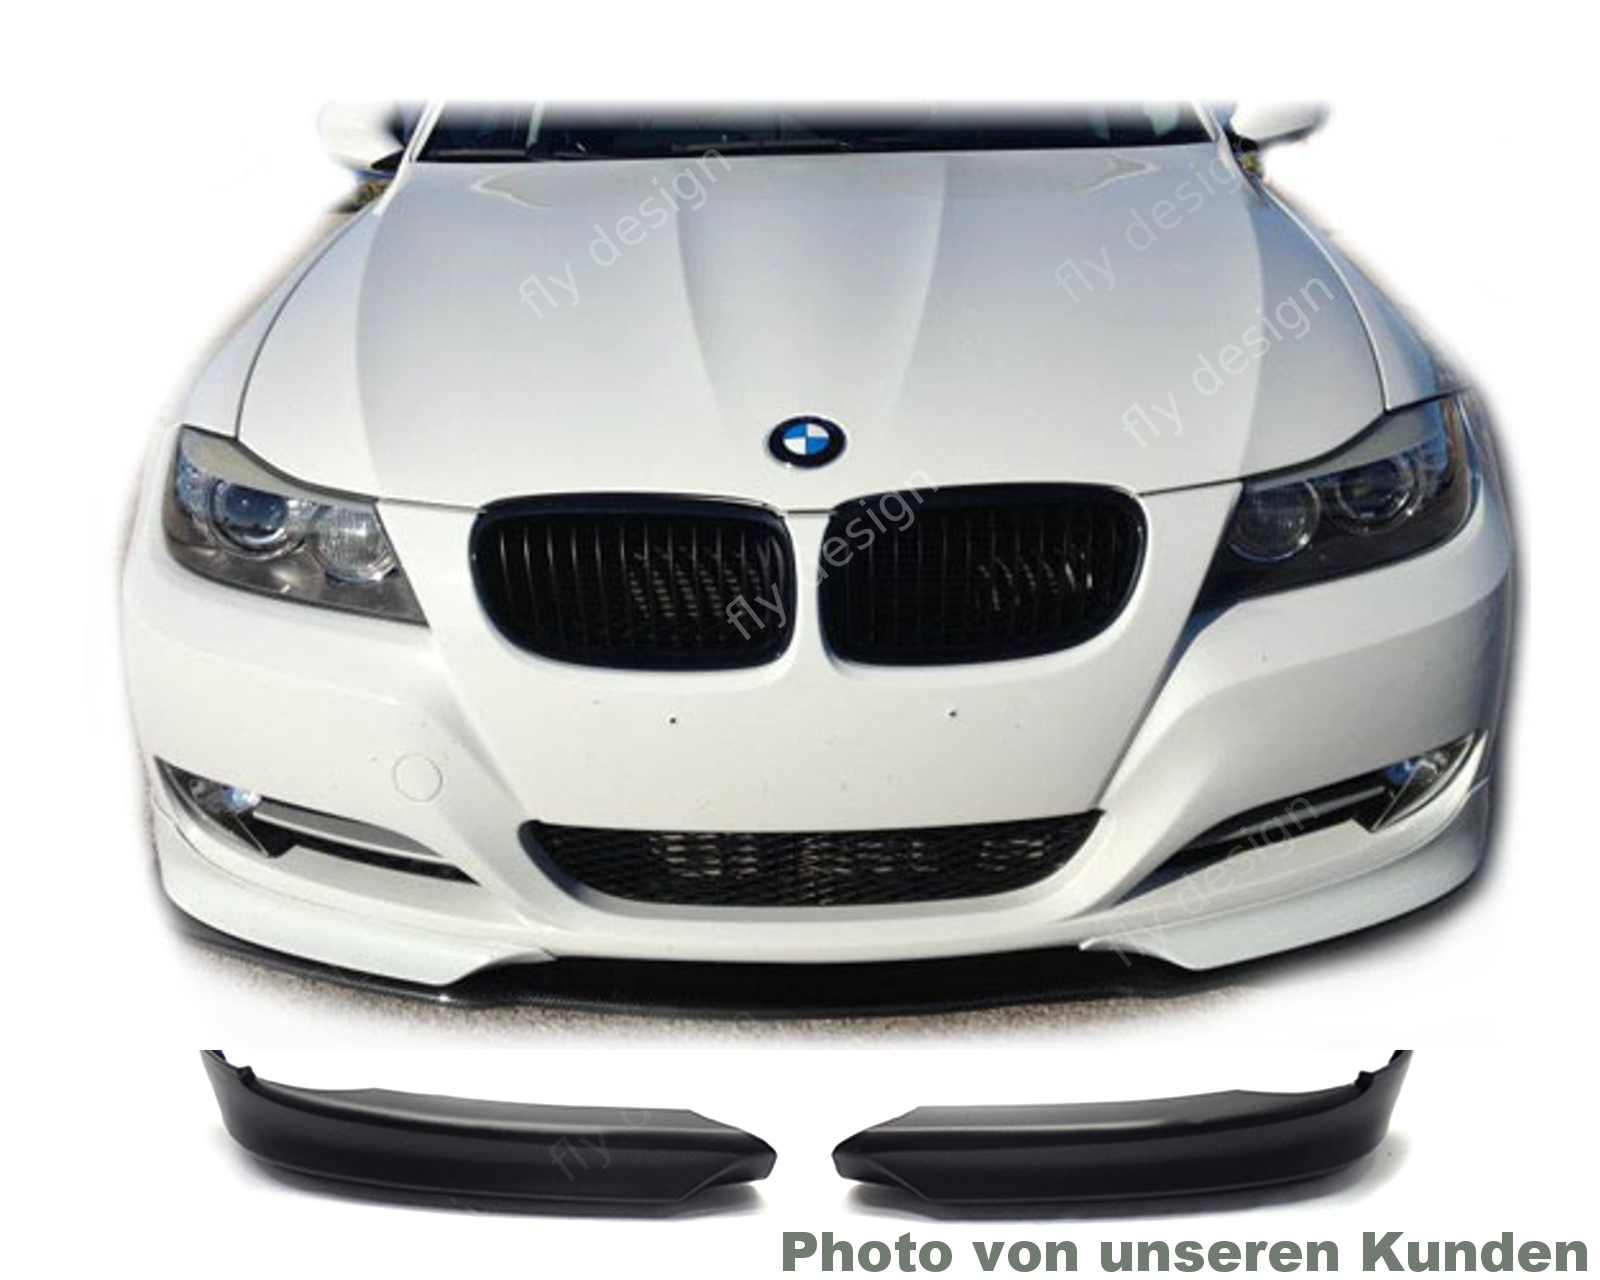 bmw e90 e91 lci limousine touring frontspoiler spoiler. Black Bedroom Furniture Sets. Home Design Ideas